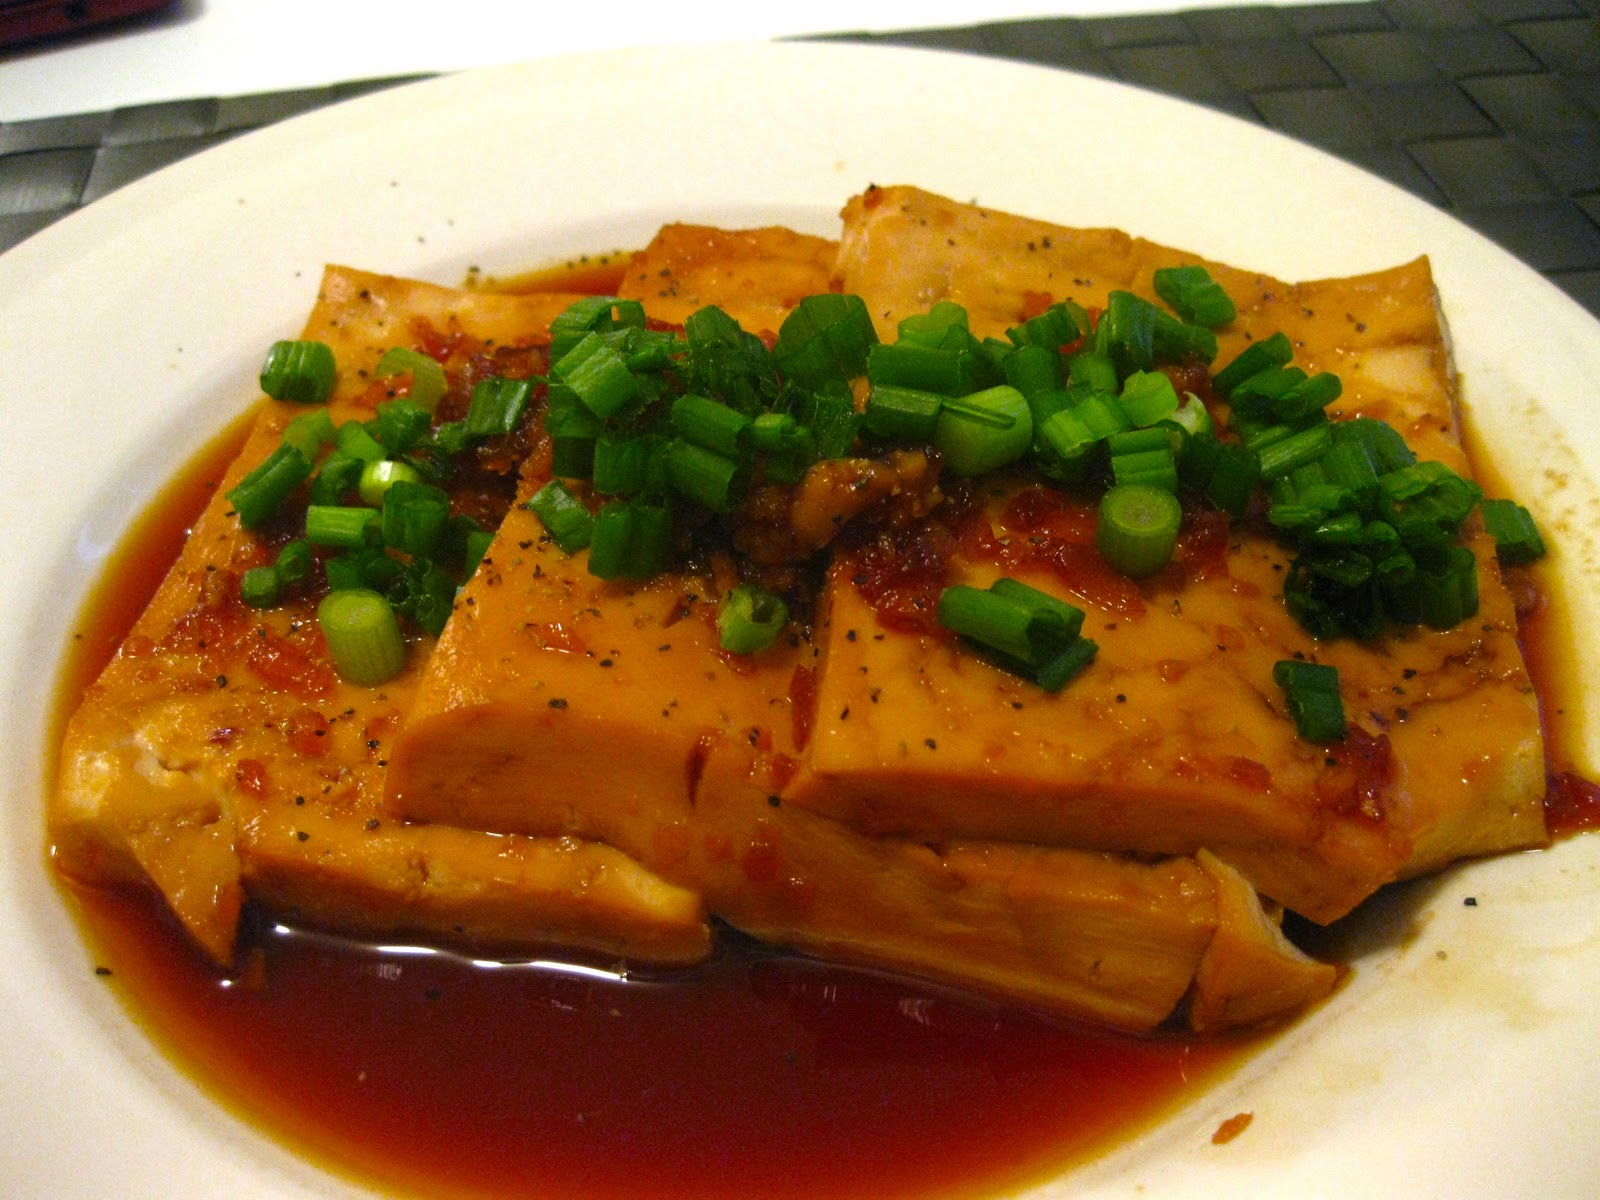 From the Stomach to the Heart: Braised Tofu in Caramel Sauce